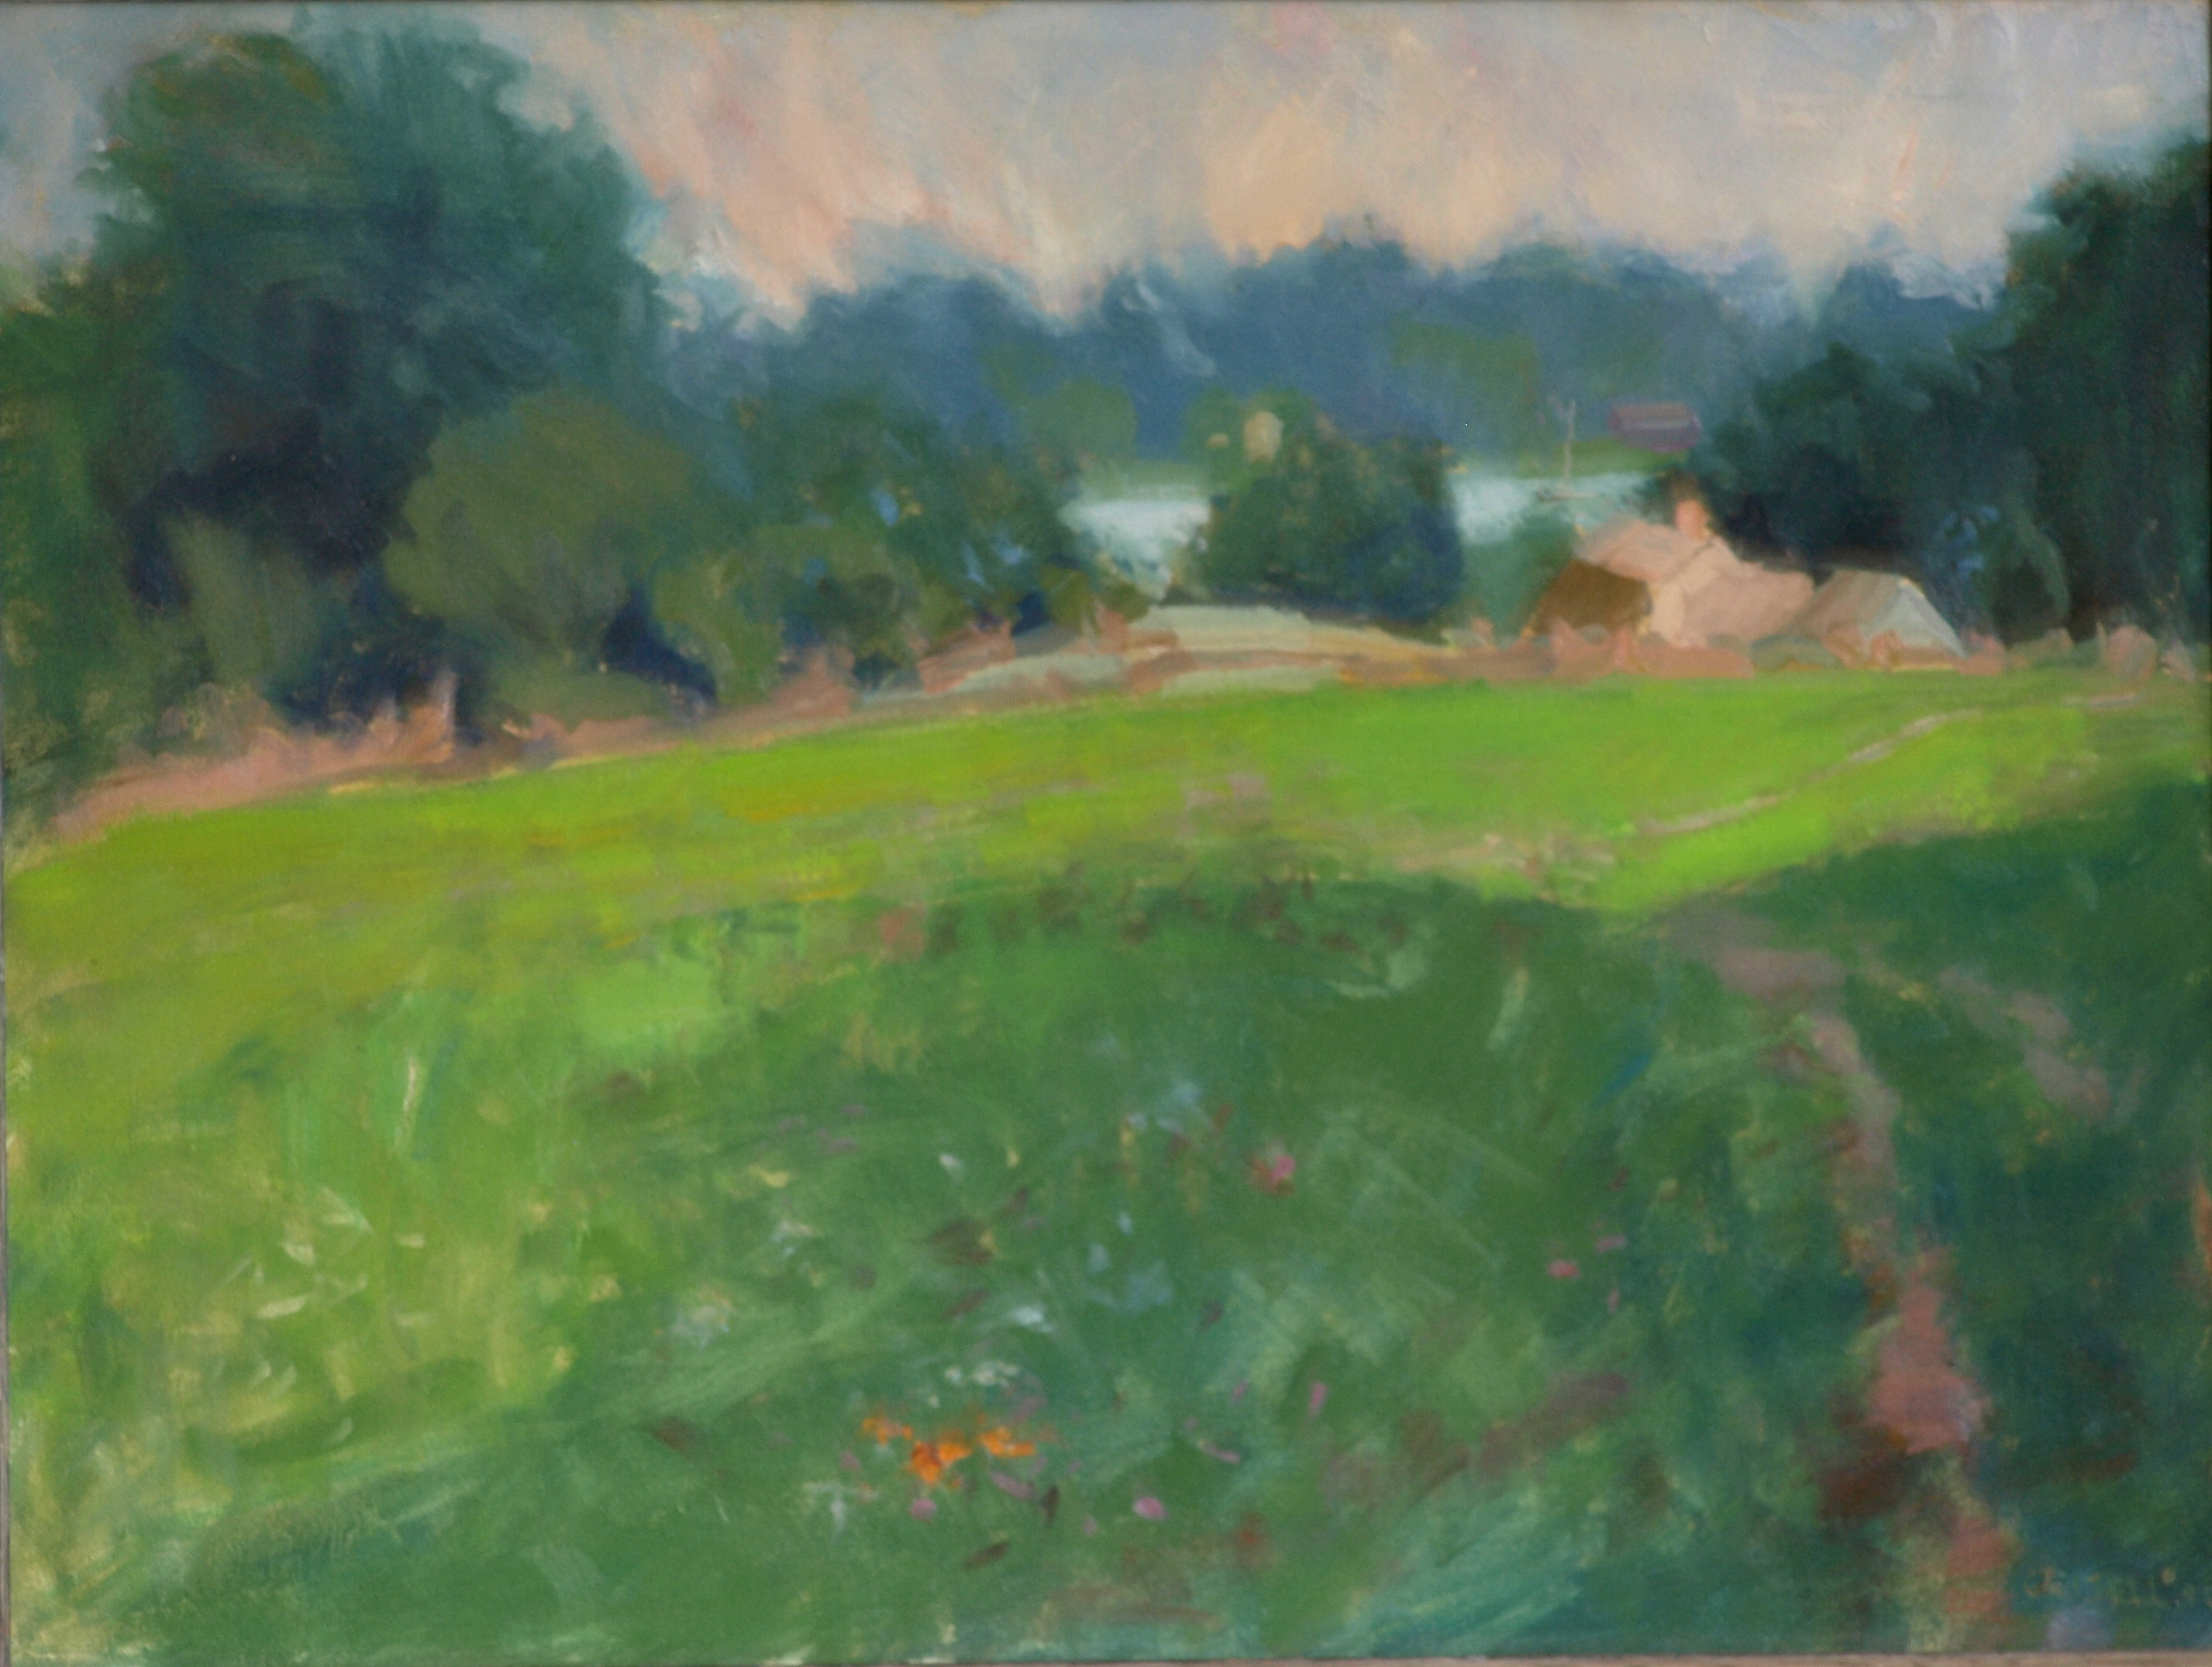 Old Farm - Mystic, Oil on Canvas, 18 x 24 Inches, by Susan Grisell, $650